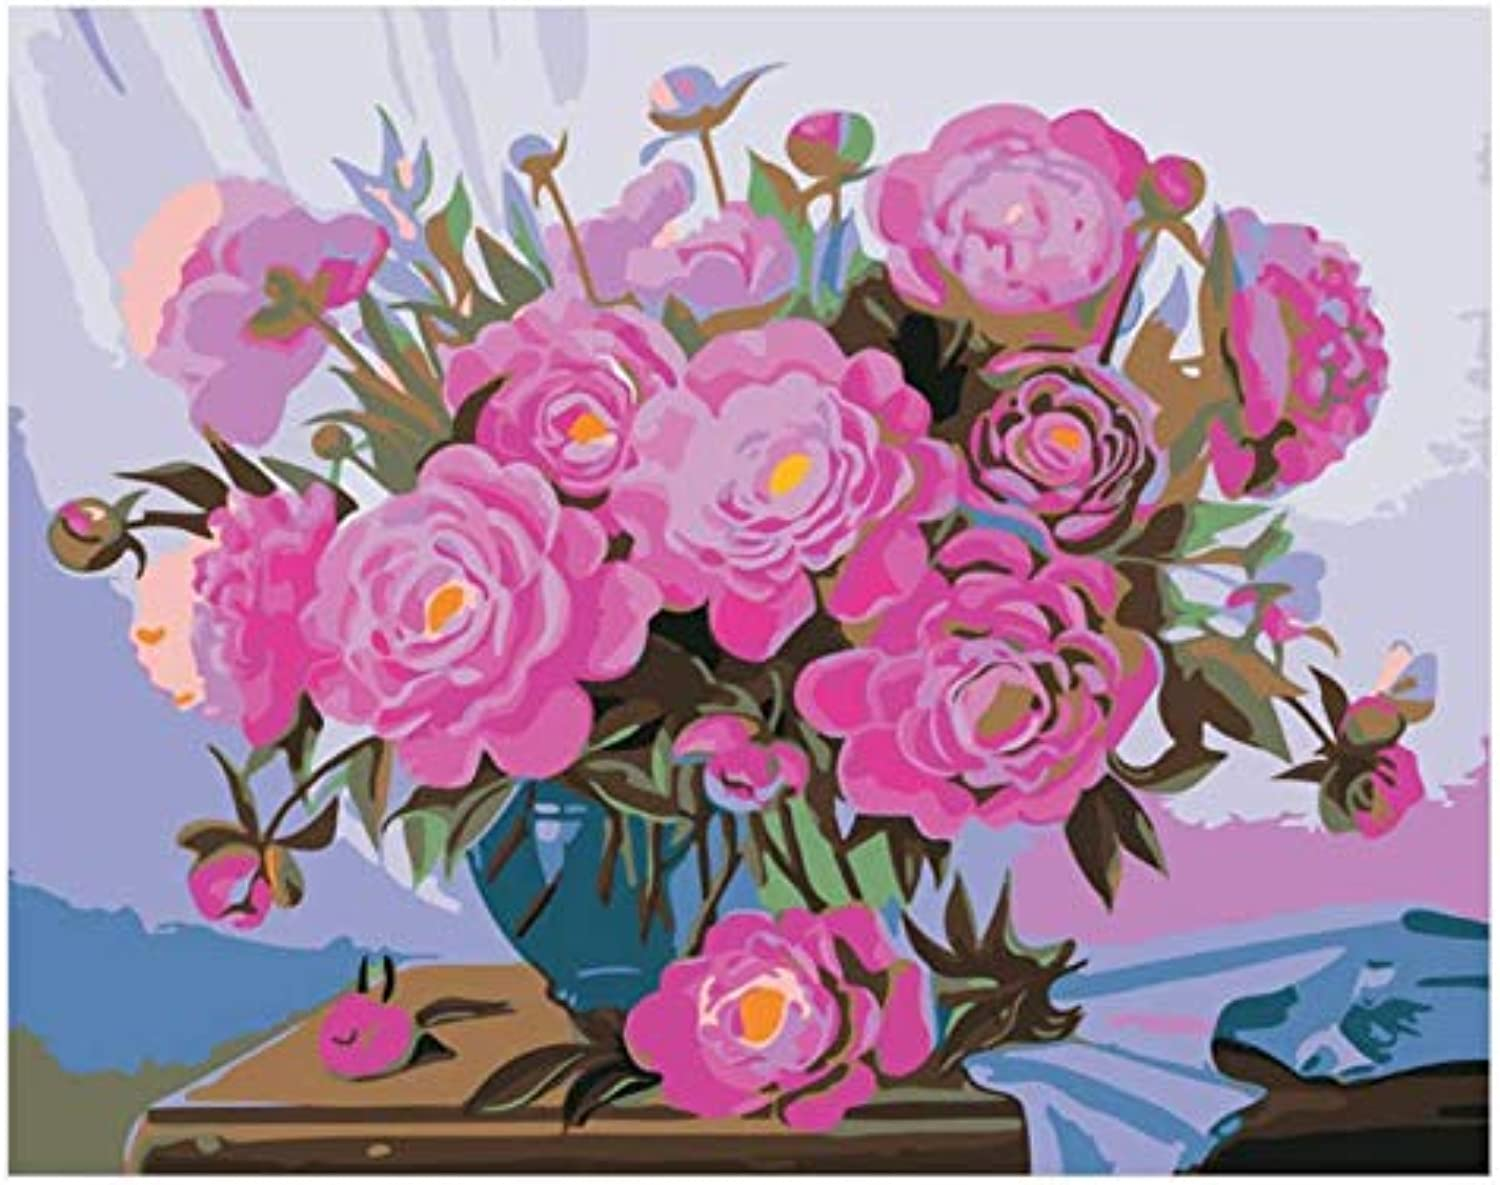 UPUPUPUP Blooming Pink pink Diy Painting By Number Flower Vase Oil Painting On CanvasAcrylic Wall Art Home Decor,Tworidc550X70Cm Frameless